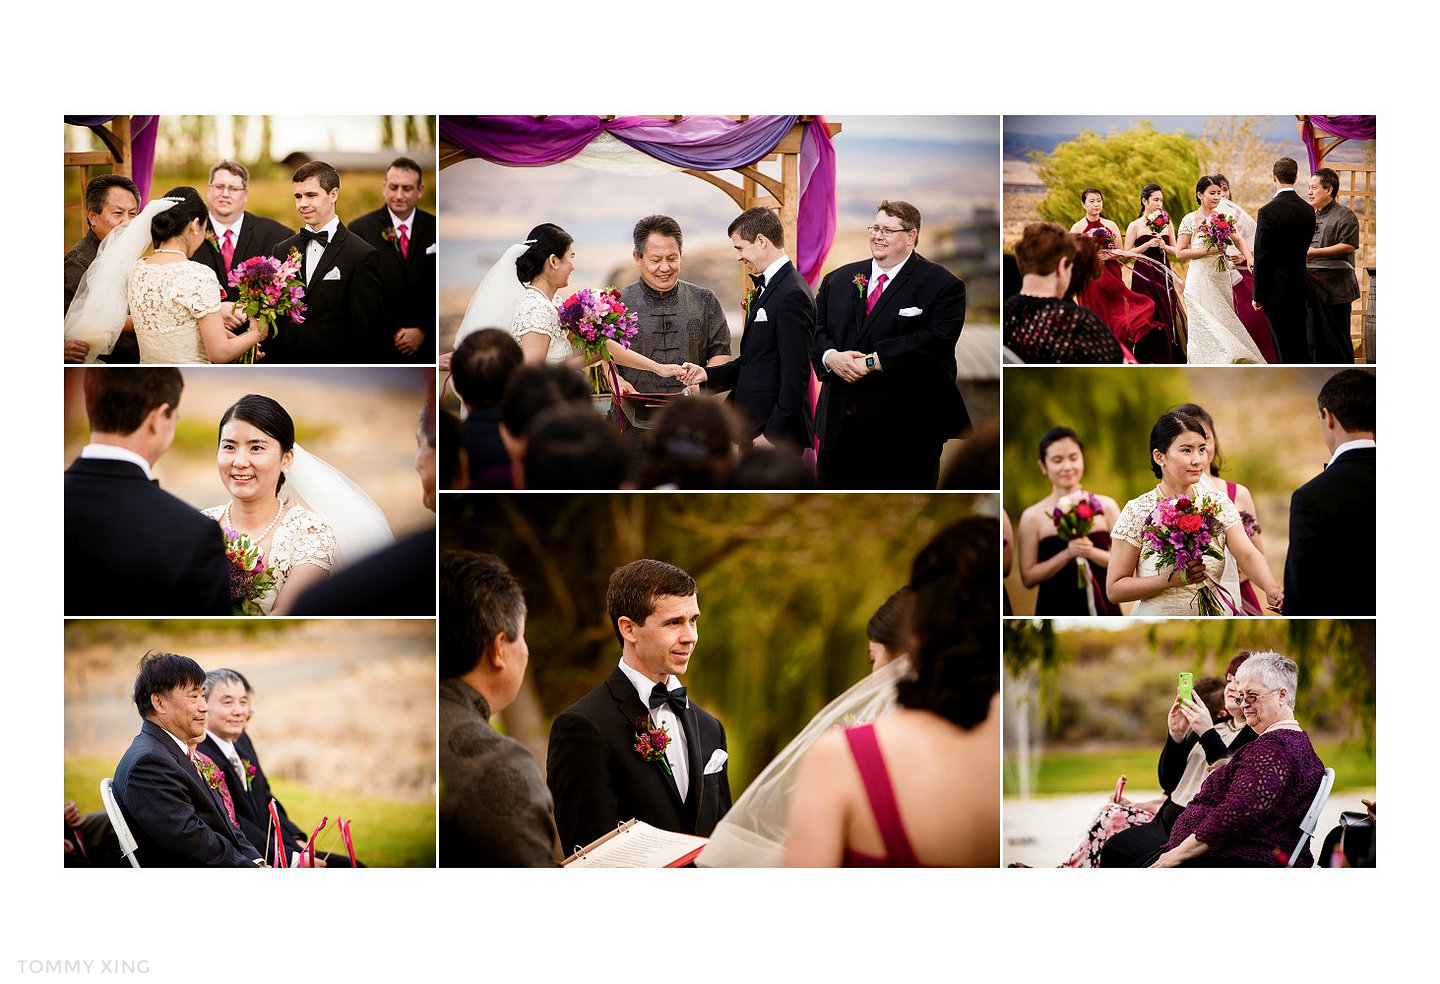 Tommy Xing Photography Seattle CAVE B ESTATE WINERY wedding 西雅图酒庄婚礼 24.jpg